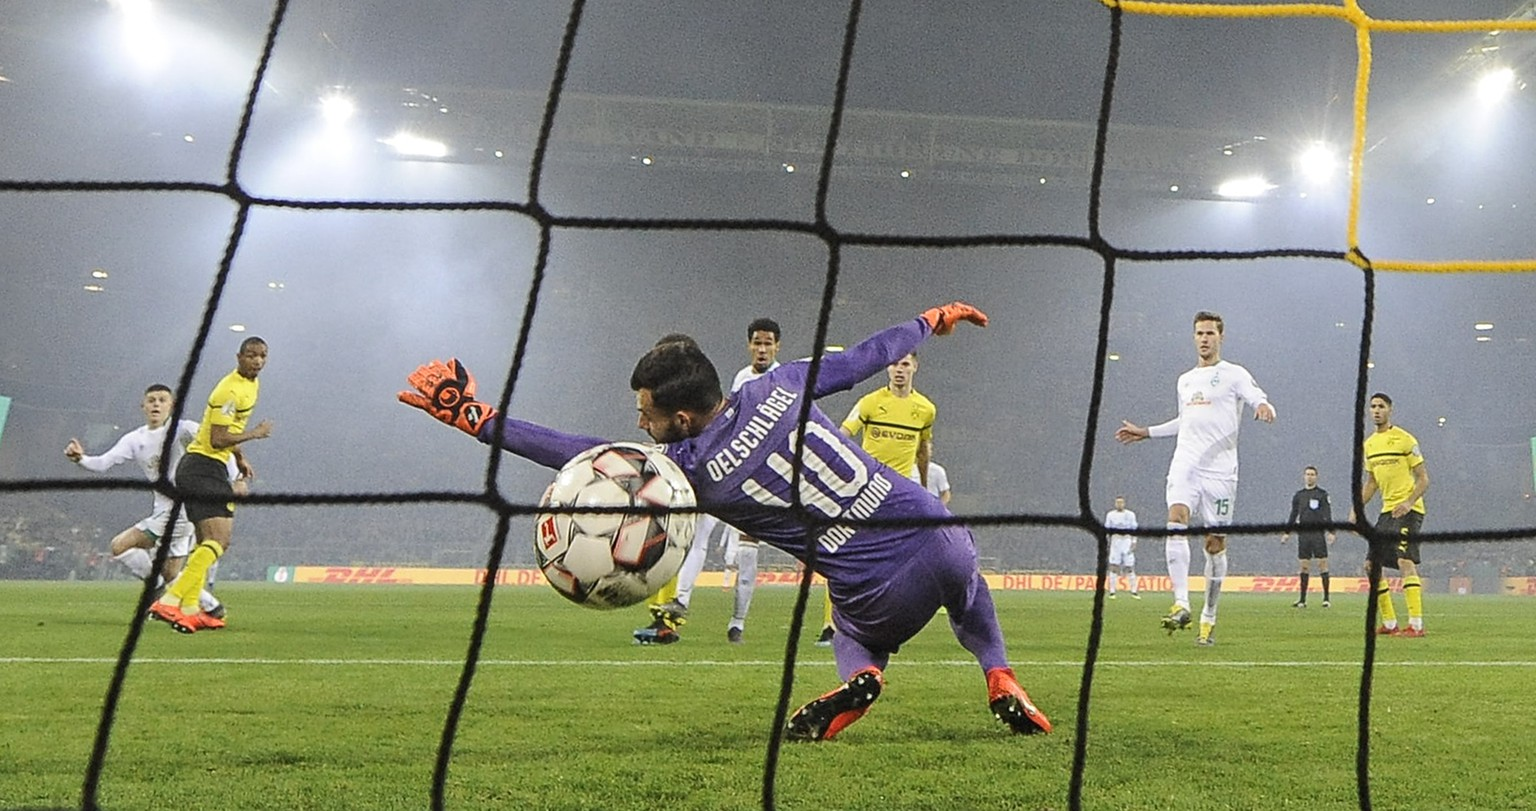 Dortmund goalkeeper Eric Oelschlaegel receives the opening goal by Bremen's Milot Rashica, left, during the German soccer cup, DFB Pokal, match between Borussia Dortmund and Werder Bremen in Dortmund, Germany, Tuesday, Feb. 5, 2019. (AP Photo/Martin Meissner)